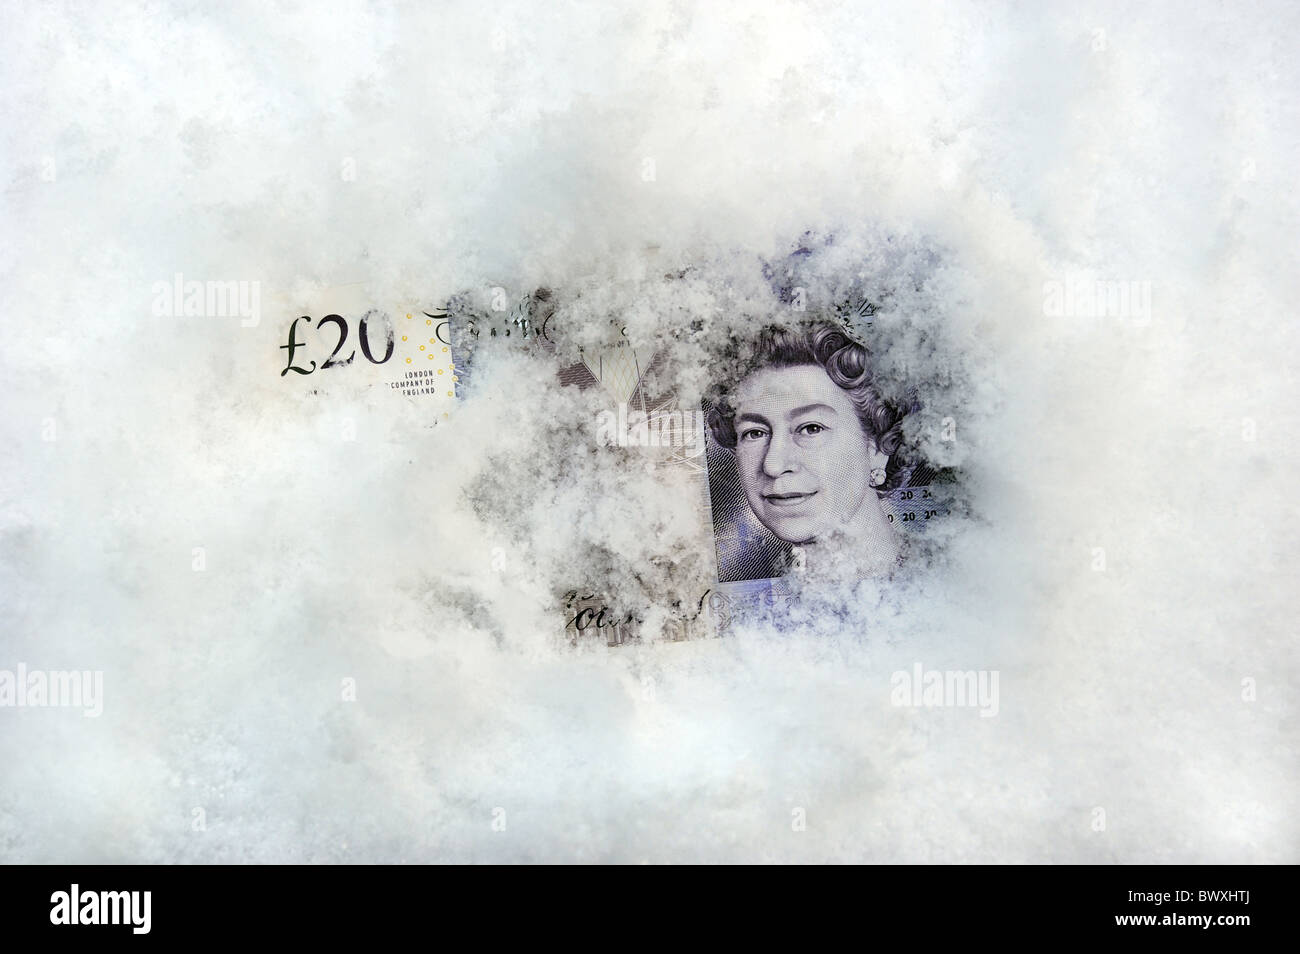 BRITISH TWENTY POUND NOTE IN SNOW AND ICE RE WINTER FUEL PAYMENTS SAVINGS CASH MONEY INVESTMENTS MORTGAGES ETC - Stock Image